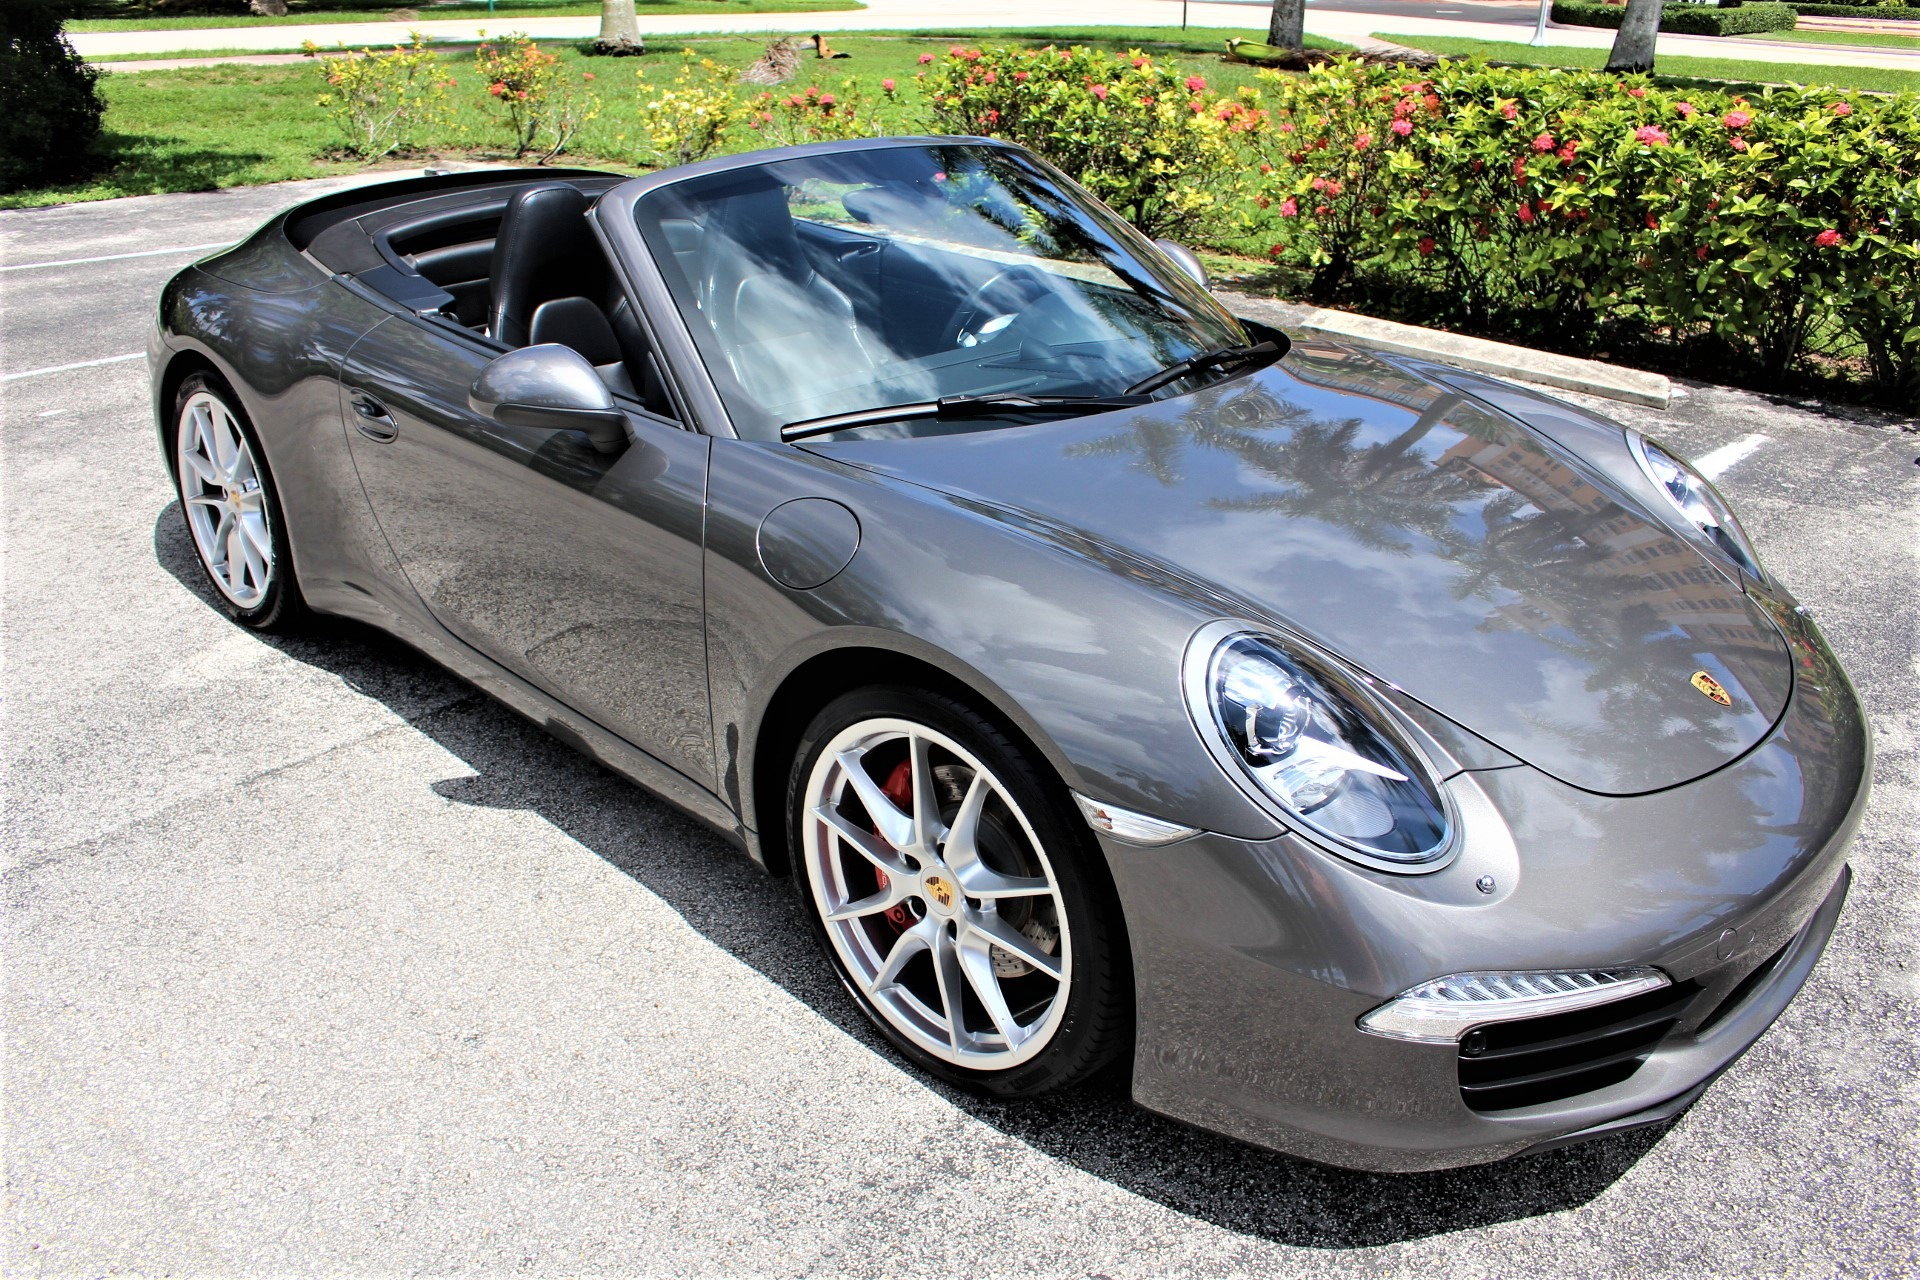 Used 2013 Porsche 911 Carrera S for sale Sold at The Gables Sports Cars in Miami FL 33146 3